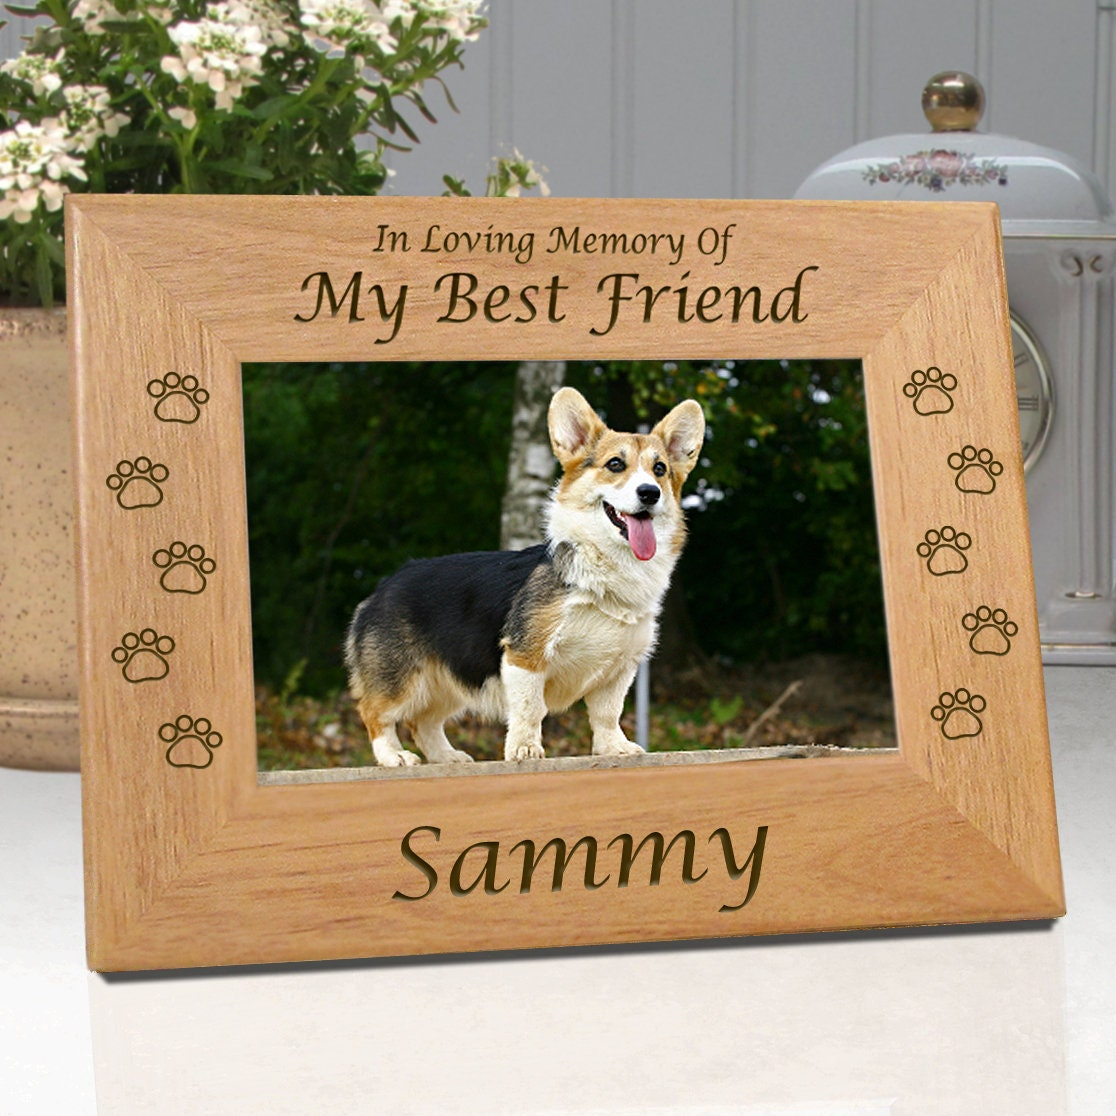 Personalized Dog Memorial Frames My Best Friend or Our Best